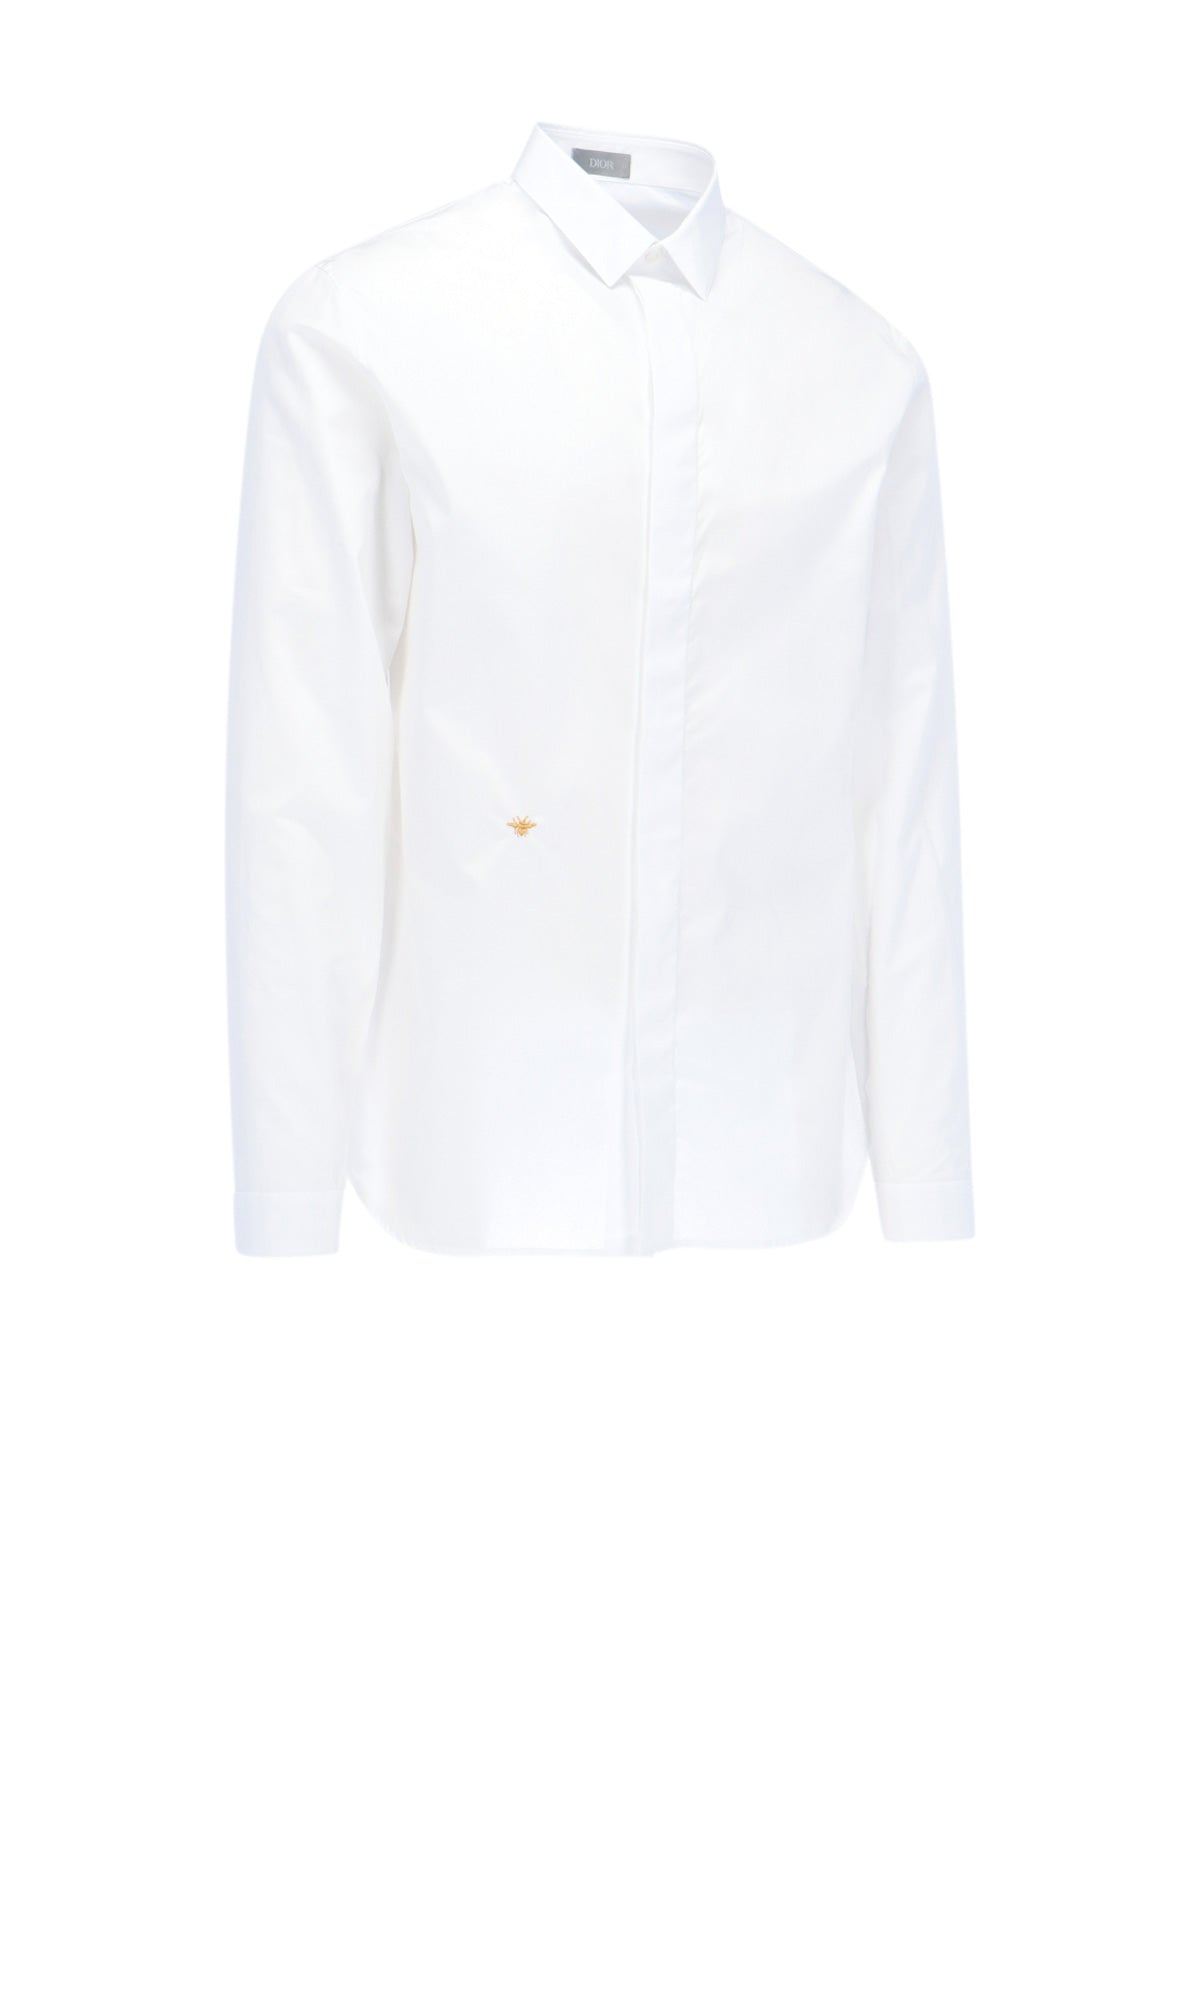 Dior DIOR HOMME BEE EMBROIDERED SHIRT